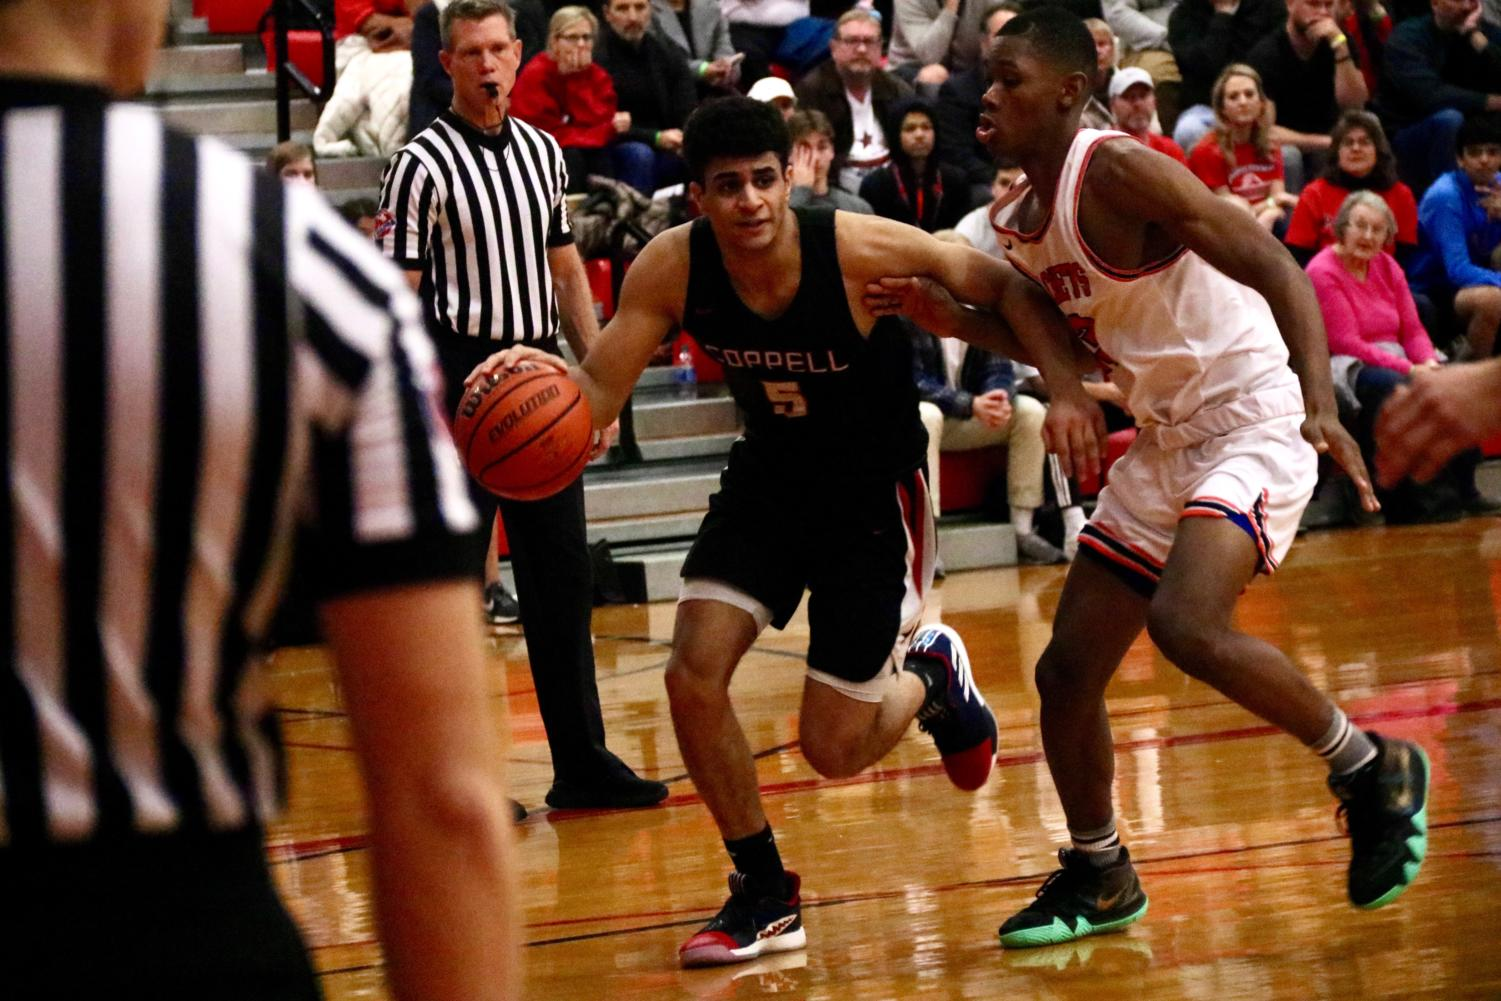 Coppell senior guard Adam Moussa dribbles around a Rockwall defender on Nov. 22 during the Classic Chevrolet Showcase in the CHS Main Gym. Moussa comes from a family of basketball players and is pursuing a future with the Egyptian national team, carrying the legacy of his father and older siblings.